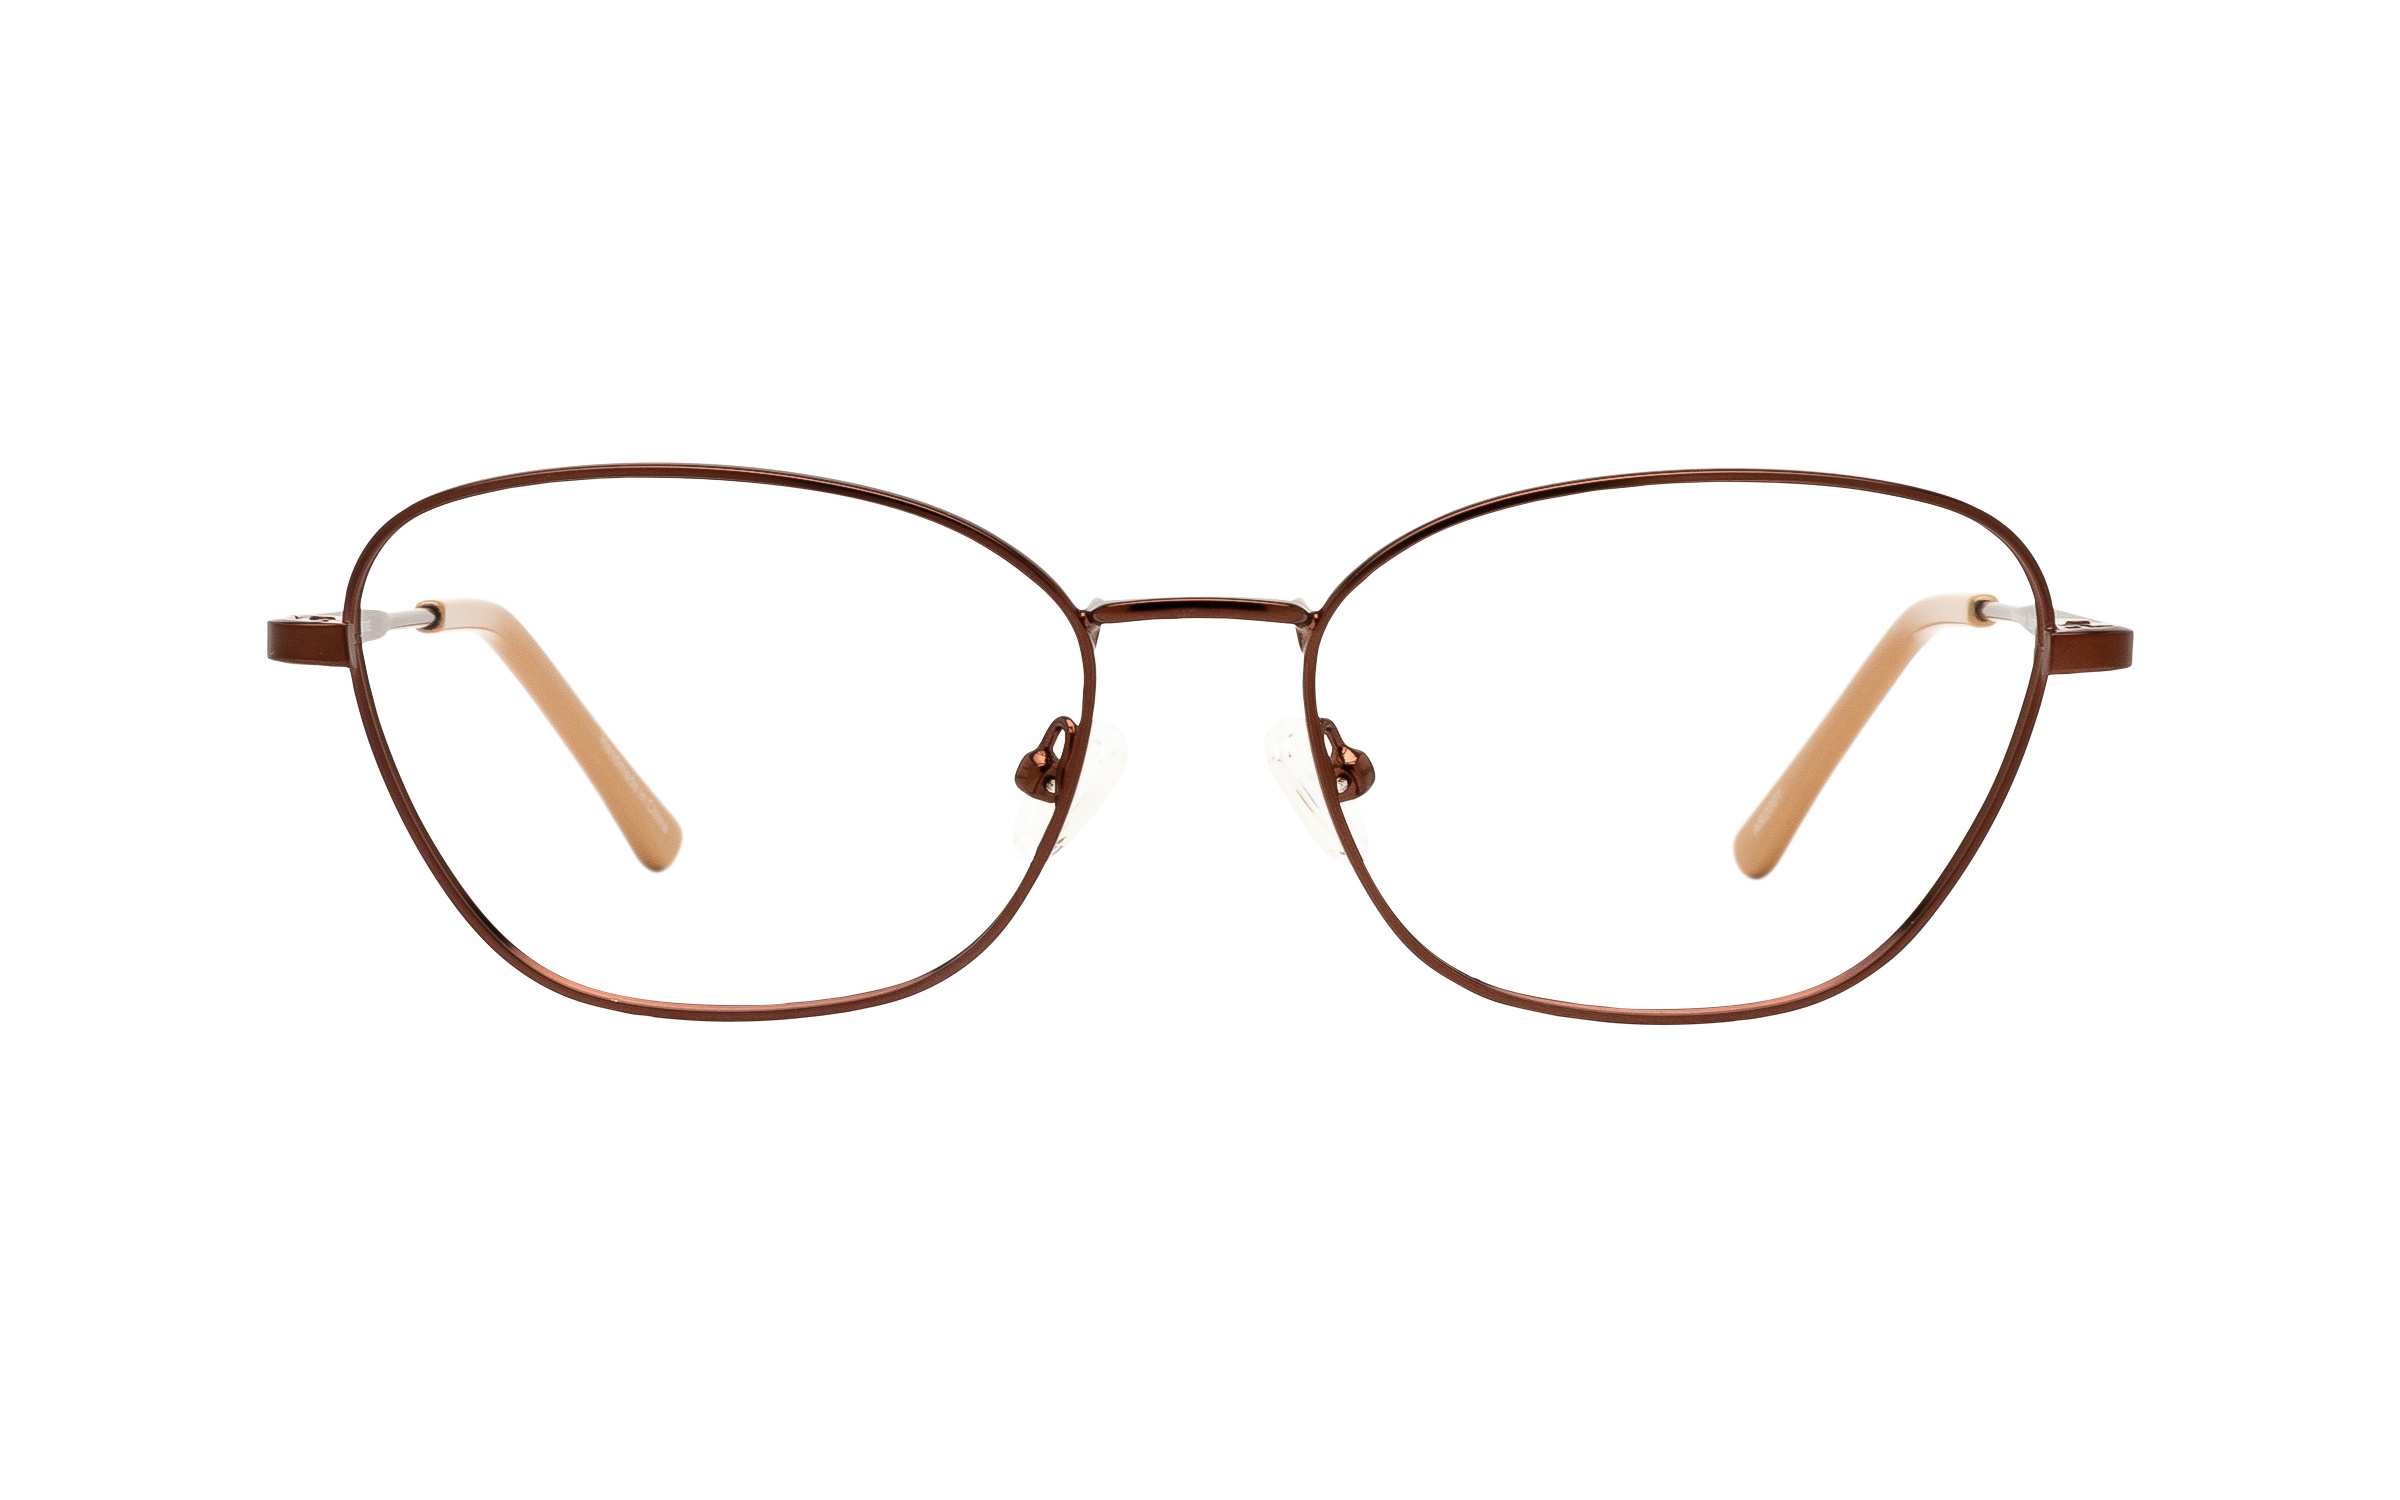 http://www.coastal.com/ - Clearly Basics Makkovik CLS065 C02 (53) Eyeglasses and Frame in Satin Brown | Acetate/Metal – Online Coastal